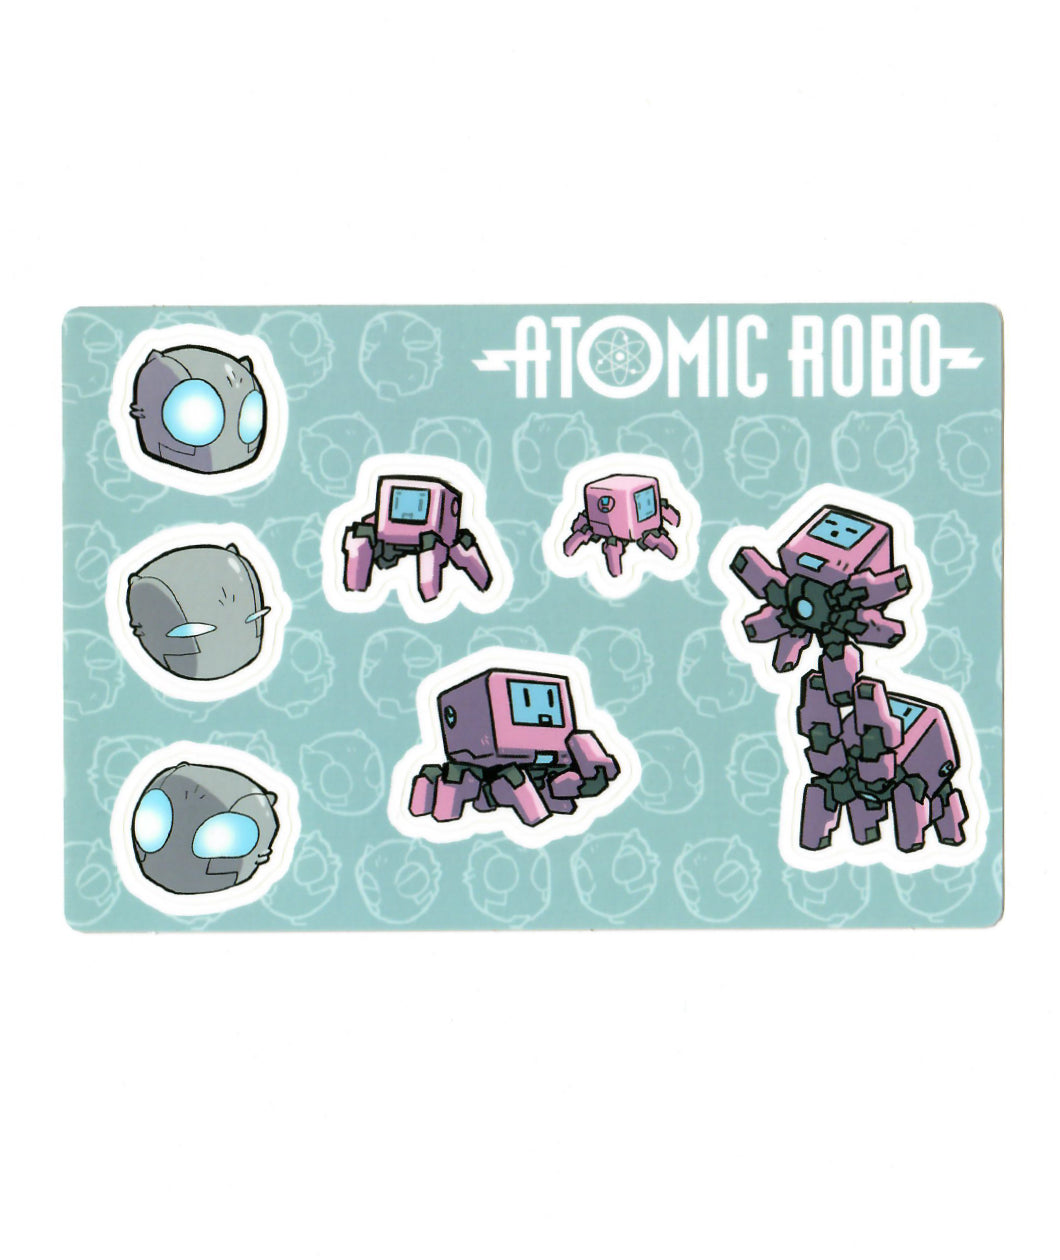 Atomic Robo Sticker Sheet